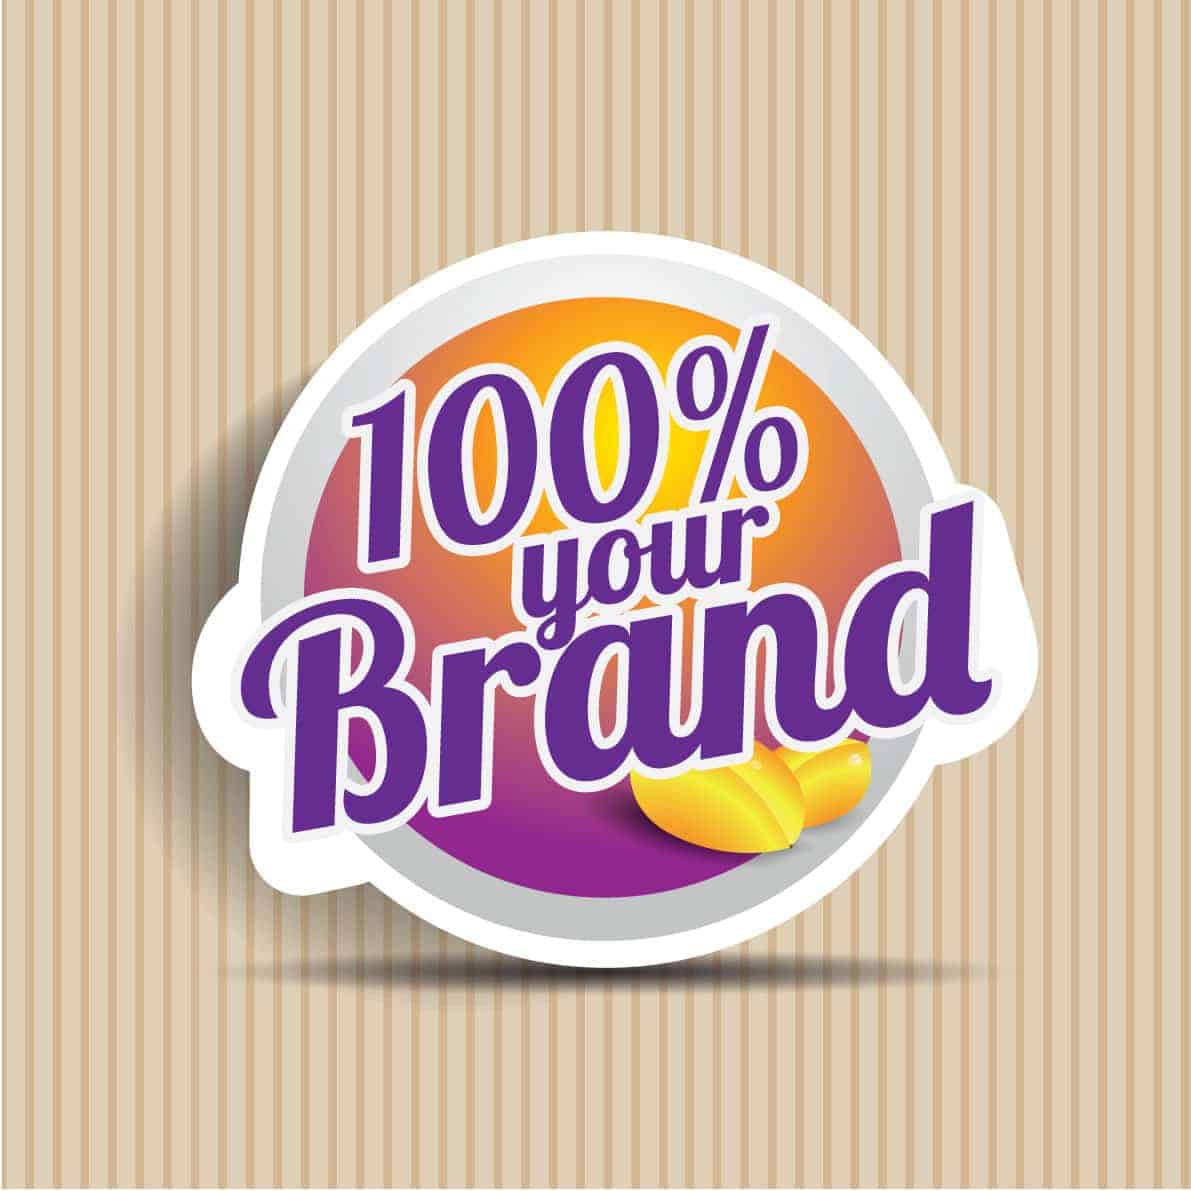 Monitoring Your Brand and Feeling Good About It